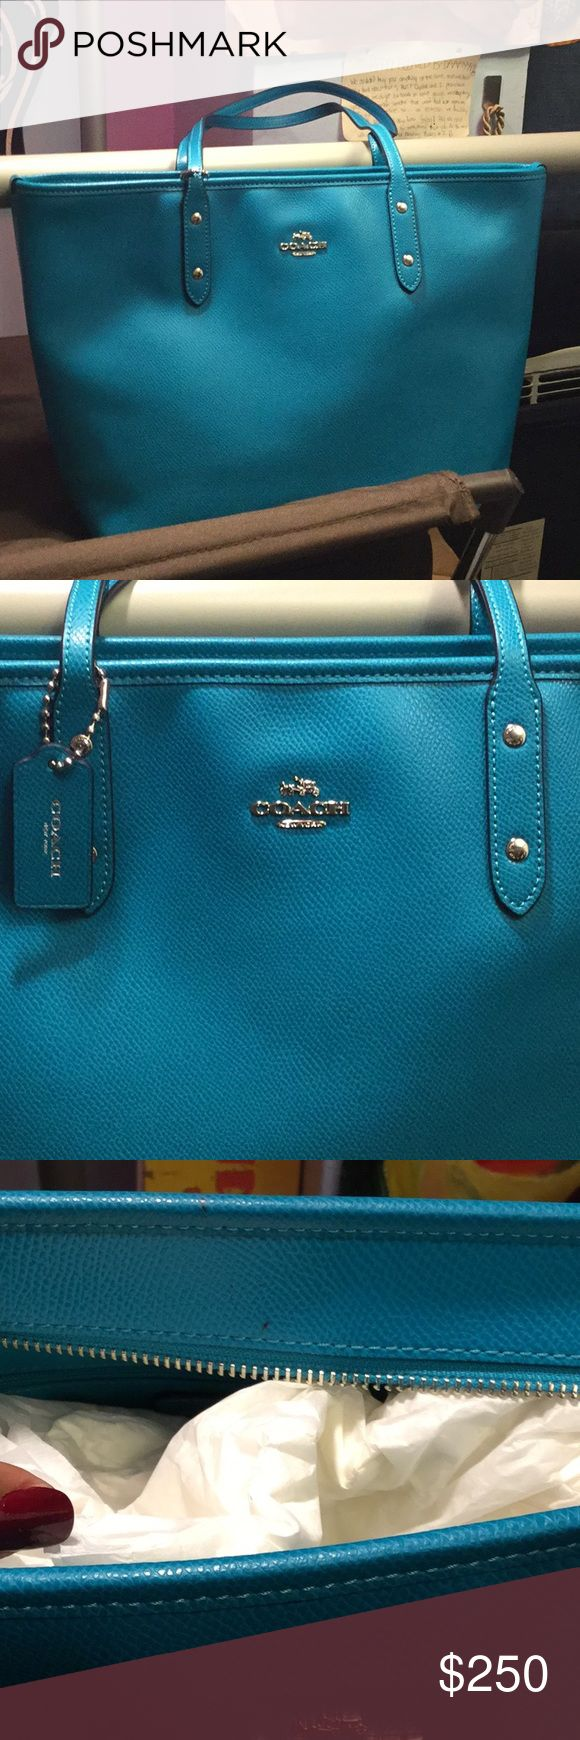 Coach tote bag Teal Coach purse. Like new. Small pen marks. Coach Bags Totes